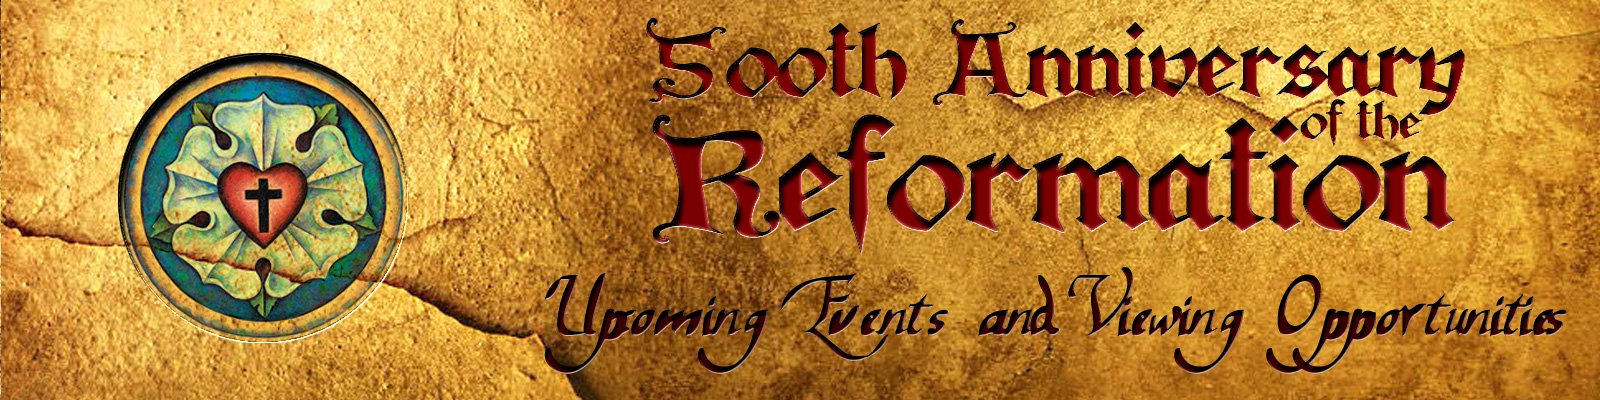 500th Anniversary of the Reformation Upcoming Events and Viewing Opportunities St John Lutheran Church Ely Iowa